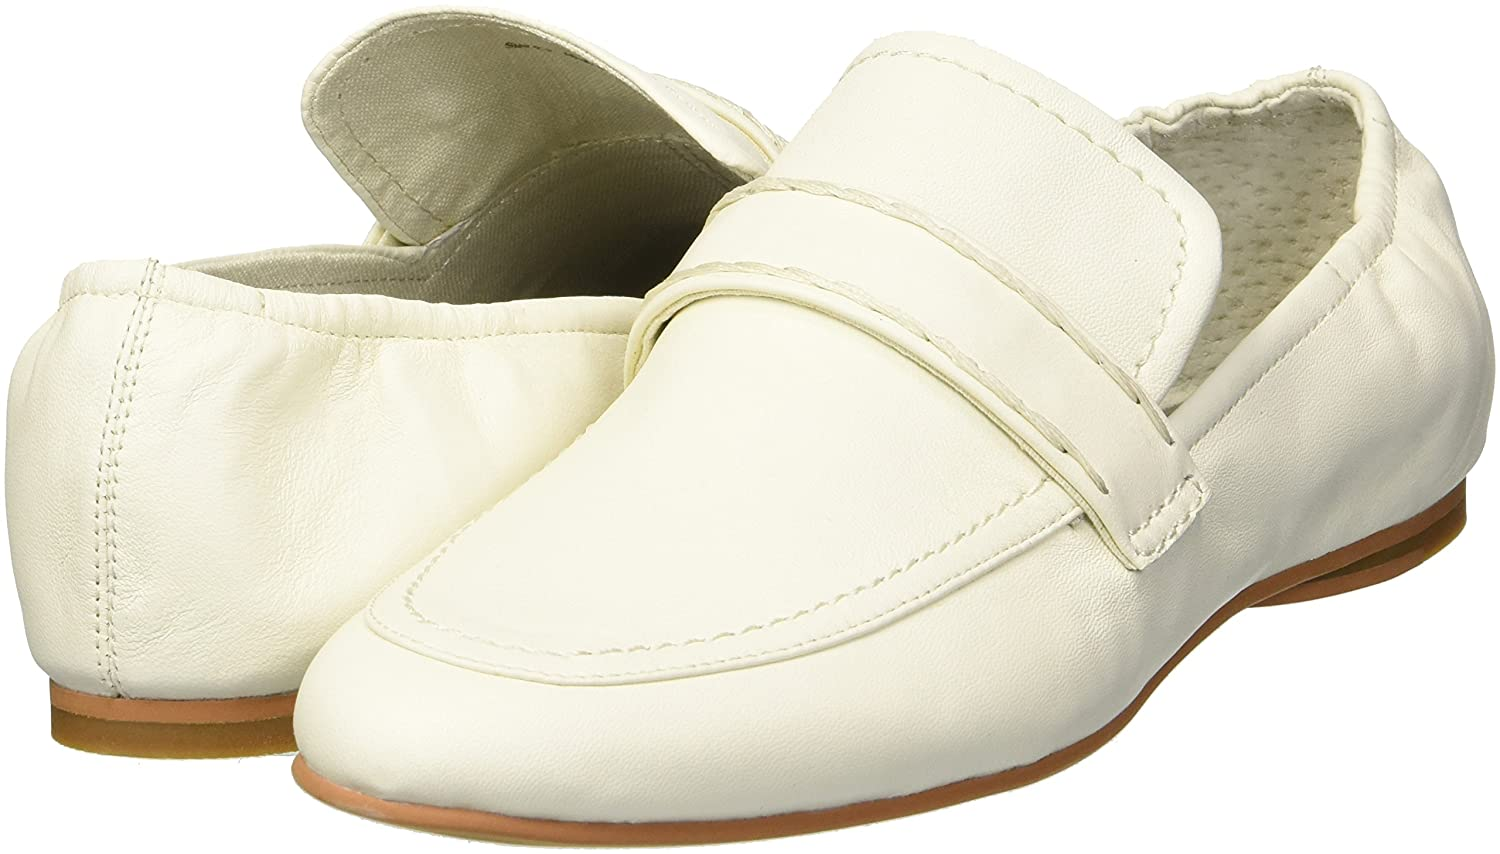 9de3cff8489 Dolce Vita Women s Fraser Loafer  Amazon.ca  Shoes   Handbags